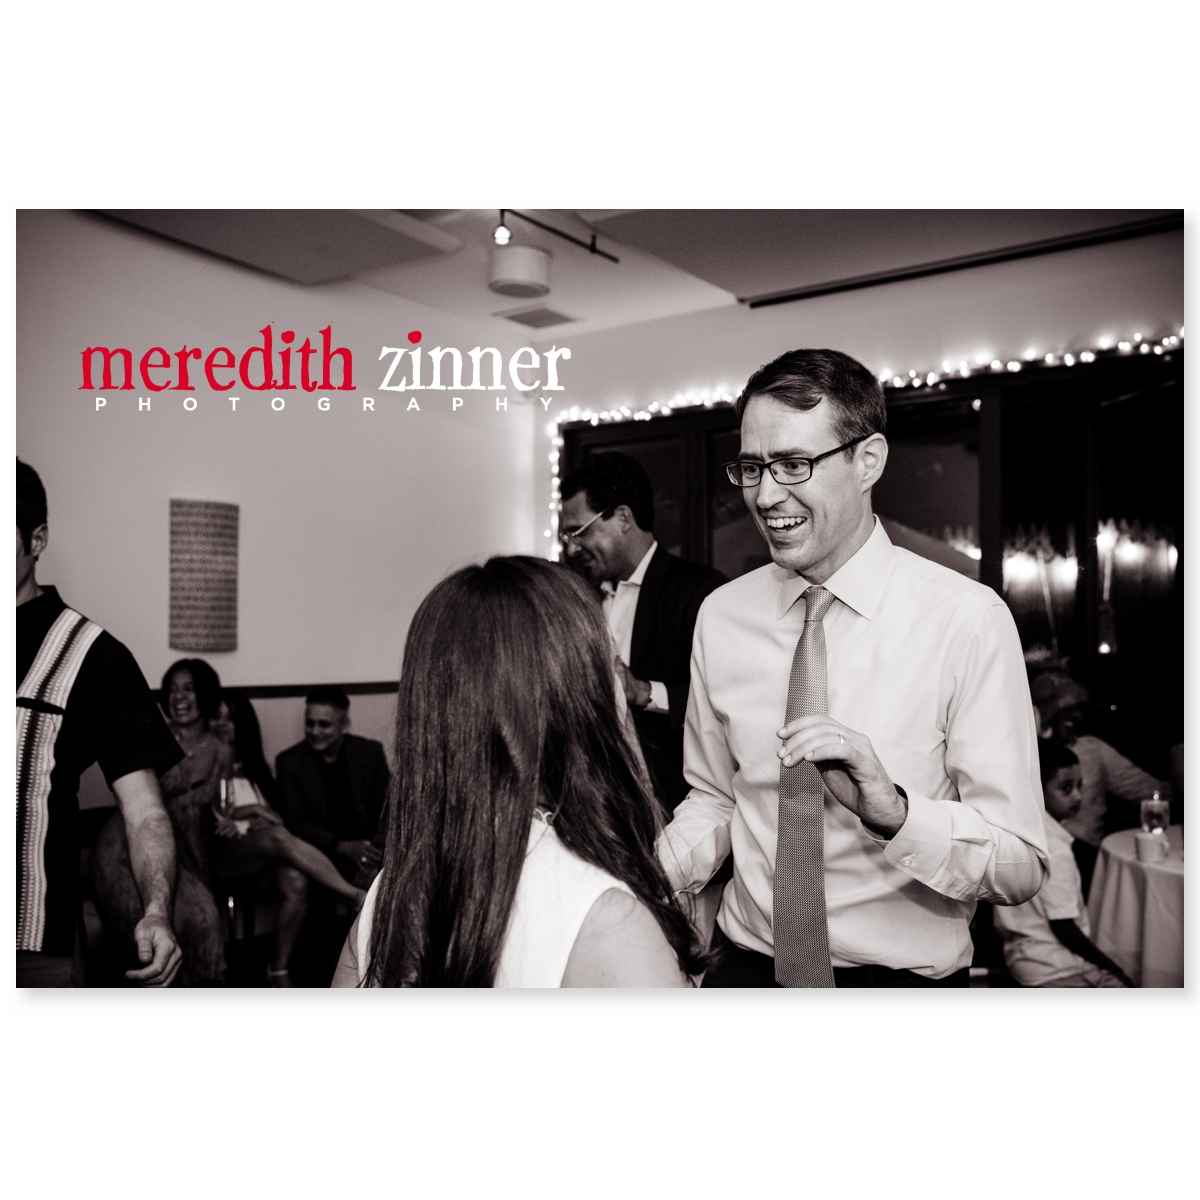 Meredith_Zinner_Photography_StilesCelebration_0407